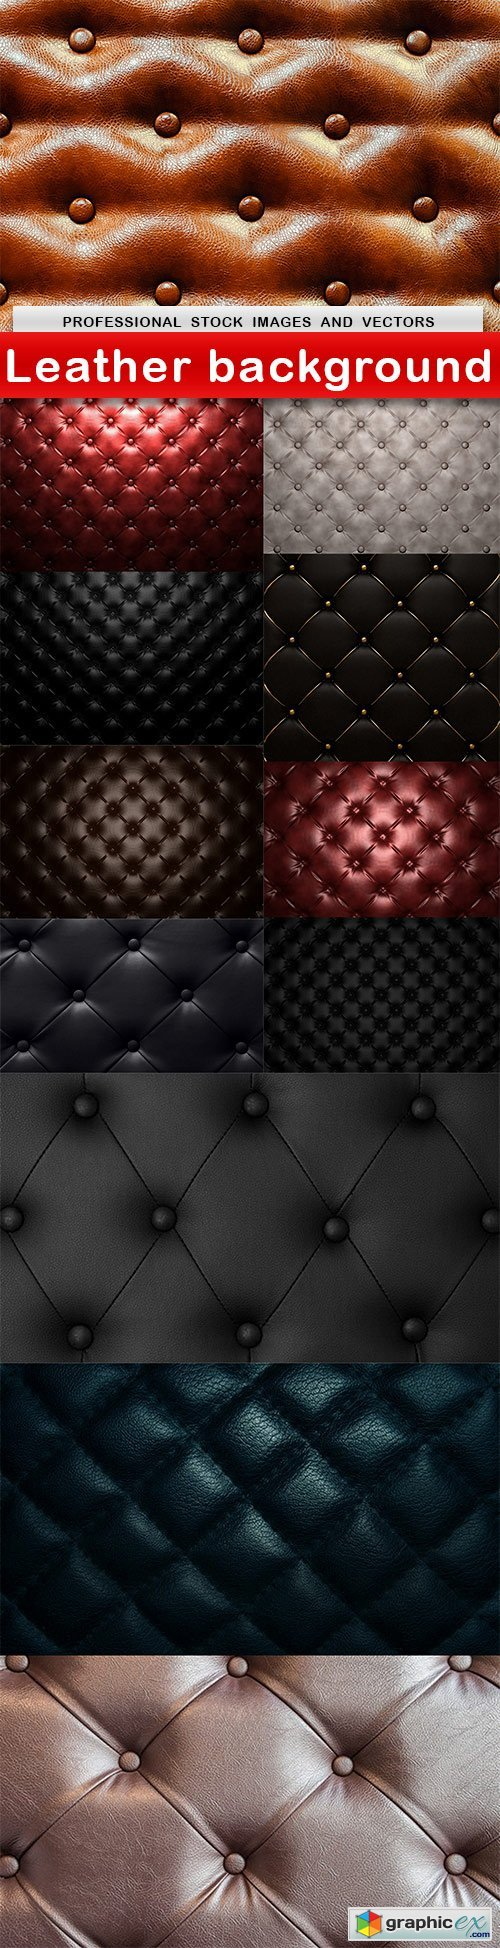 Leather background - 12 UHQ JPEG